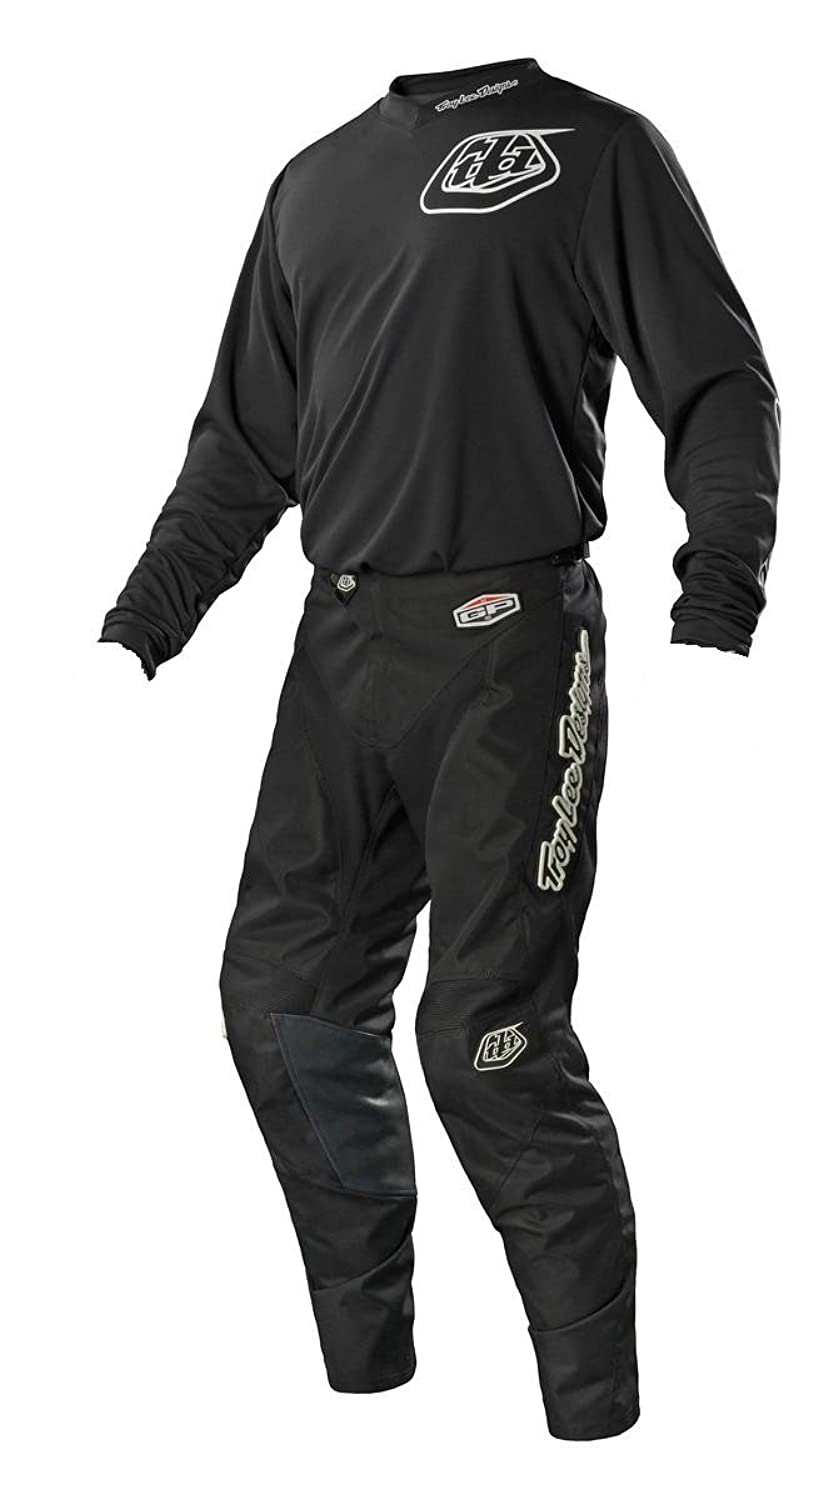 2016 Troy Lee Designs Gp Midnight Jersey & Pant Riding Gear Combo